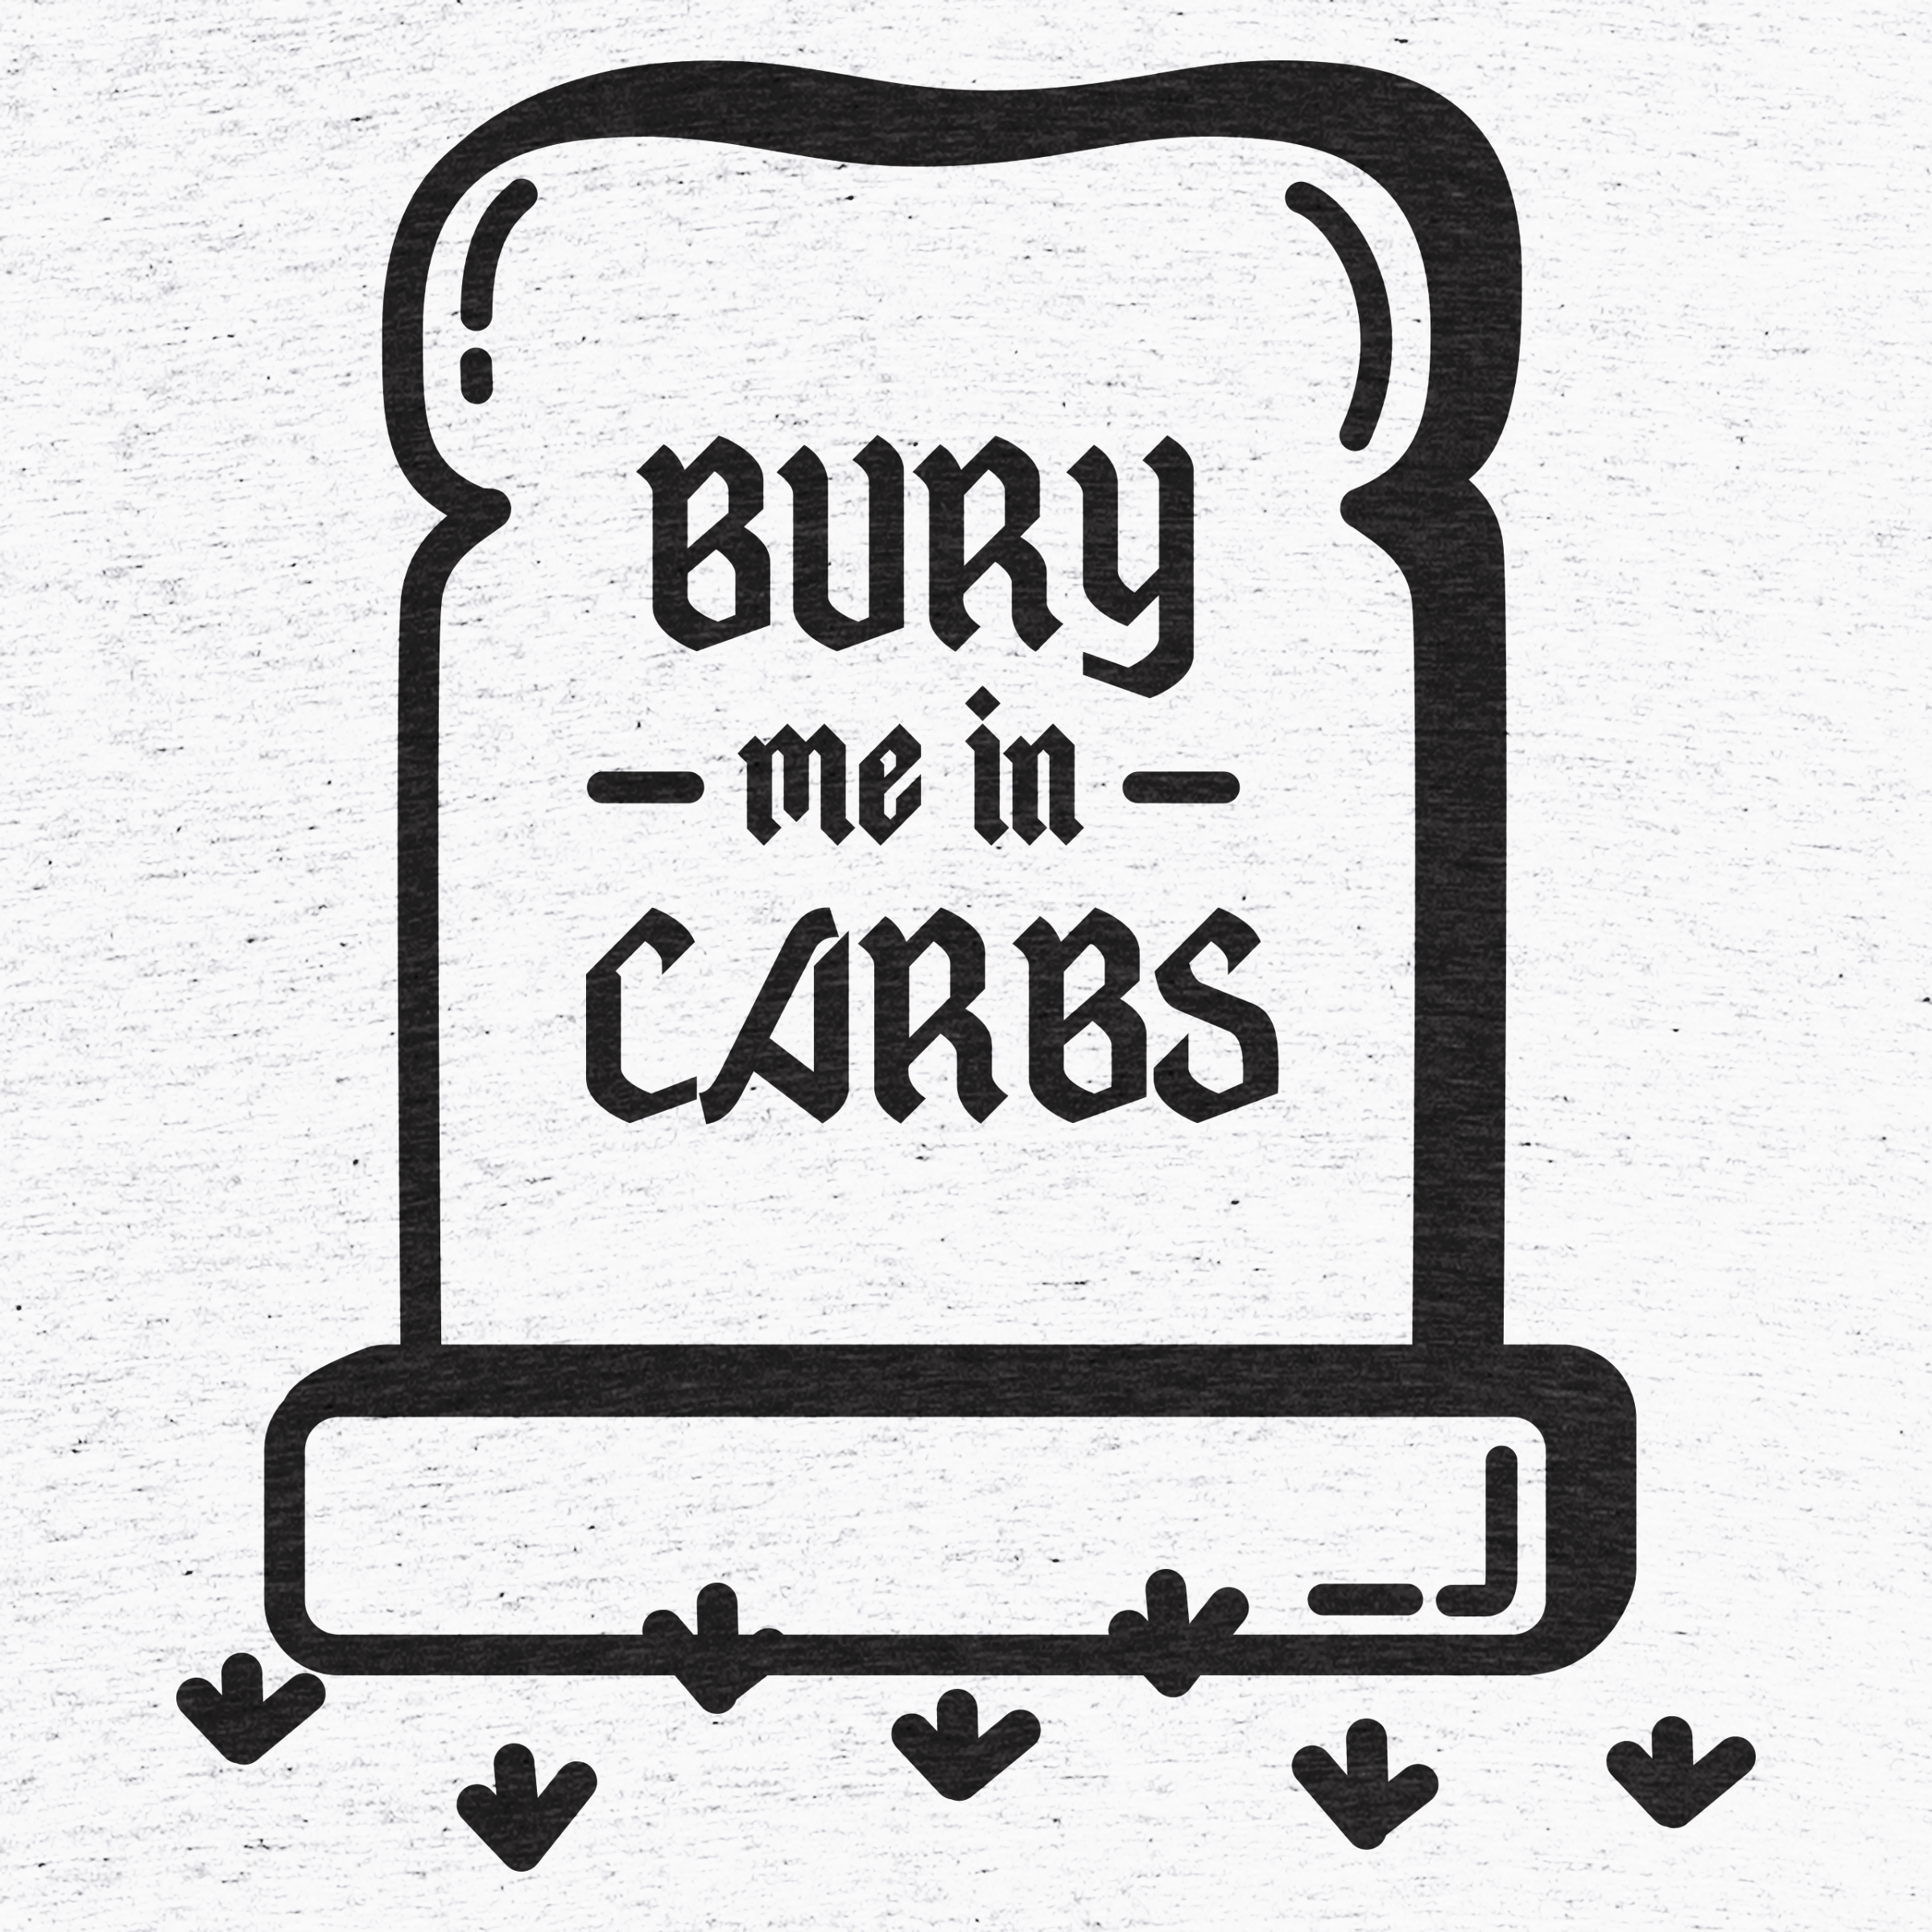 Bury Me In Carbs